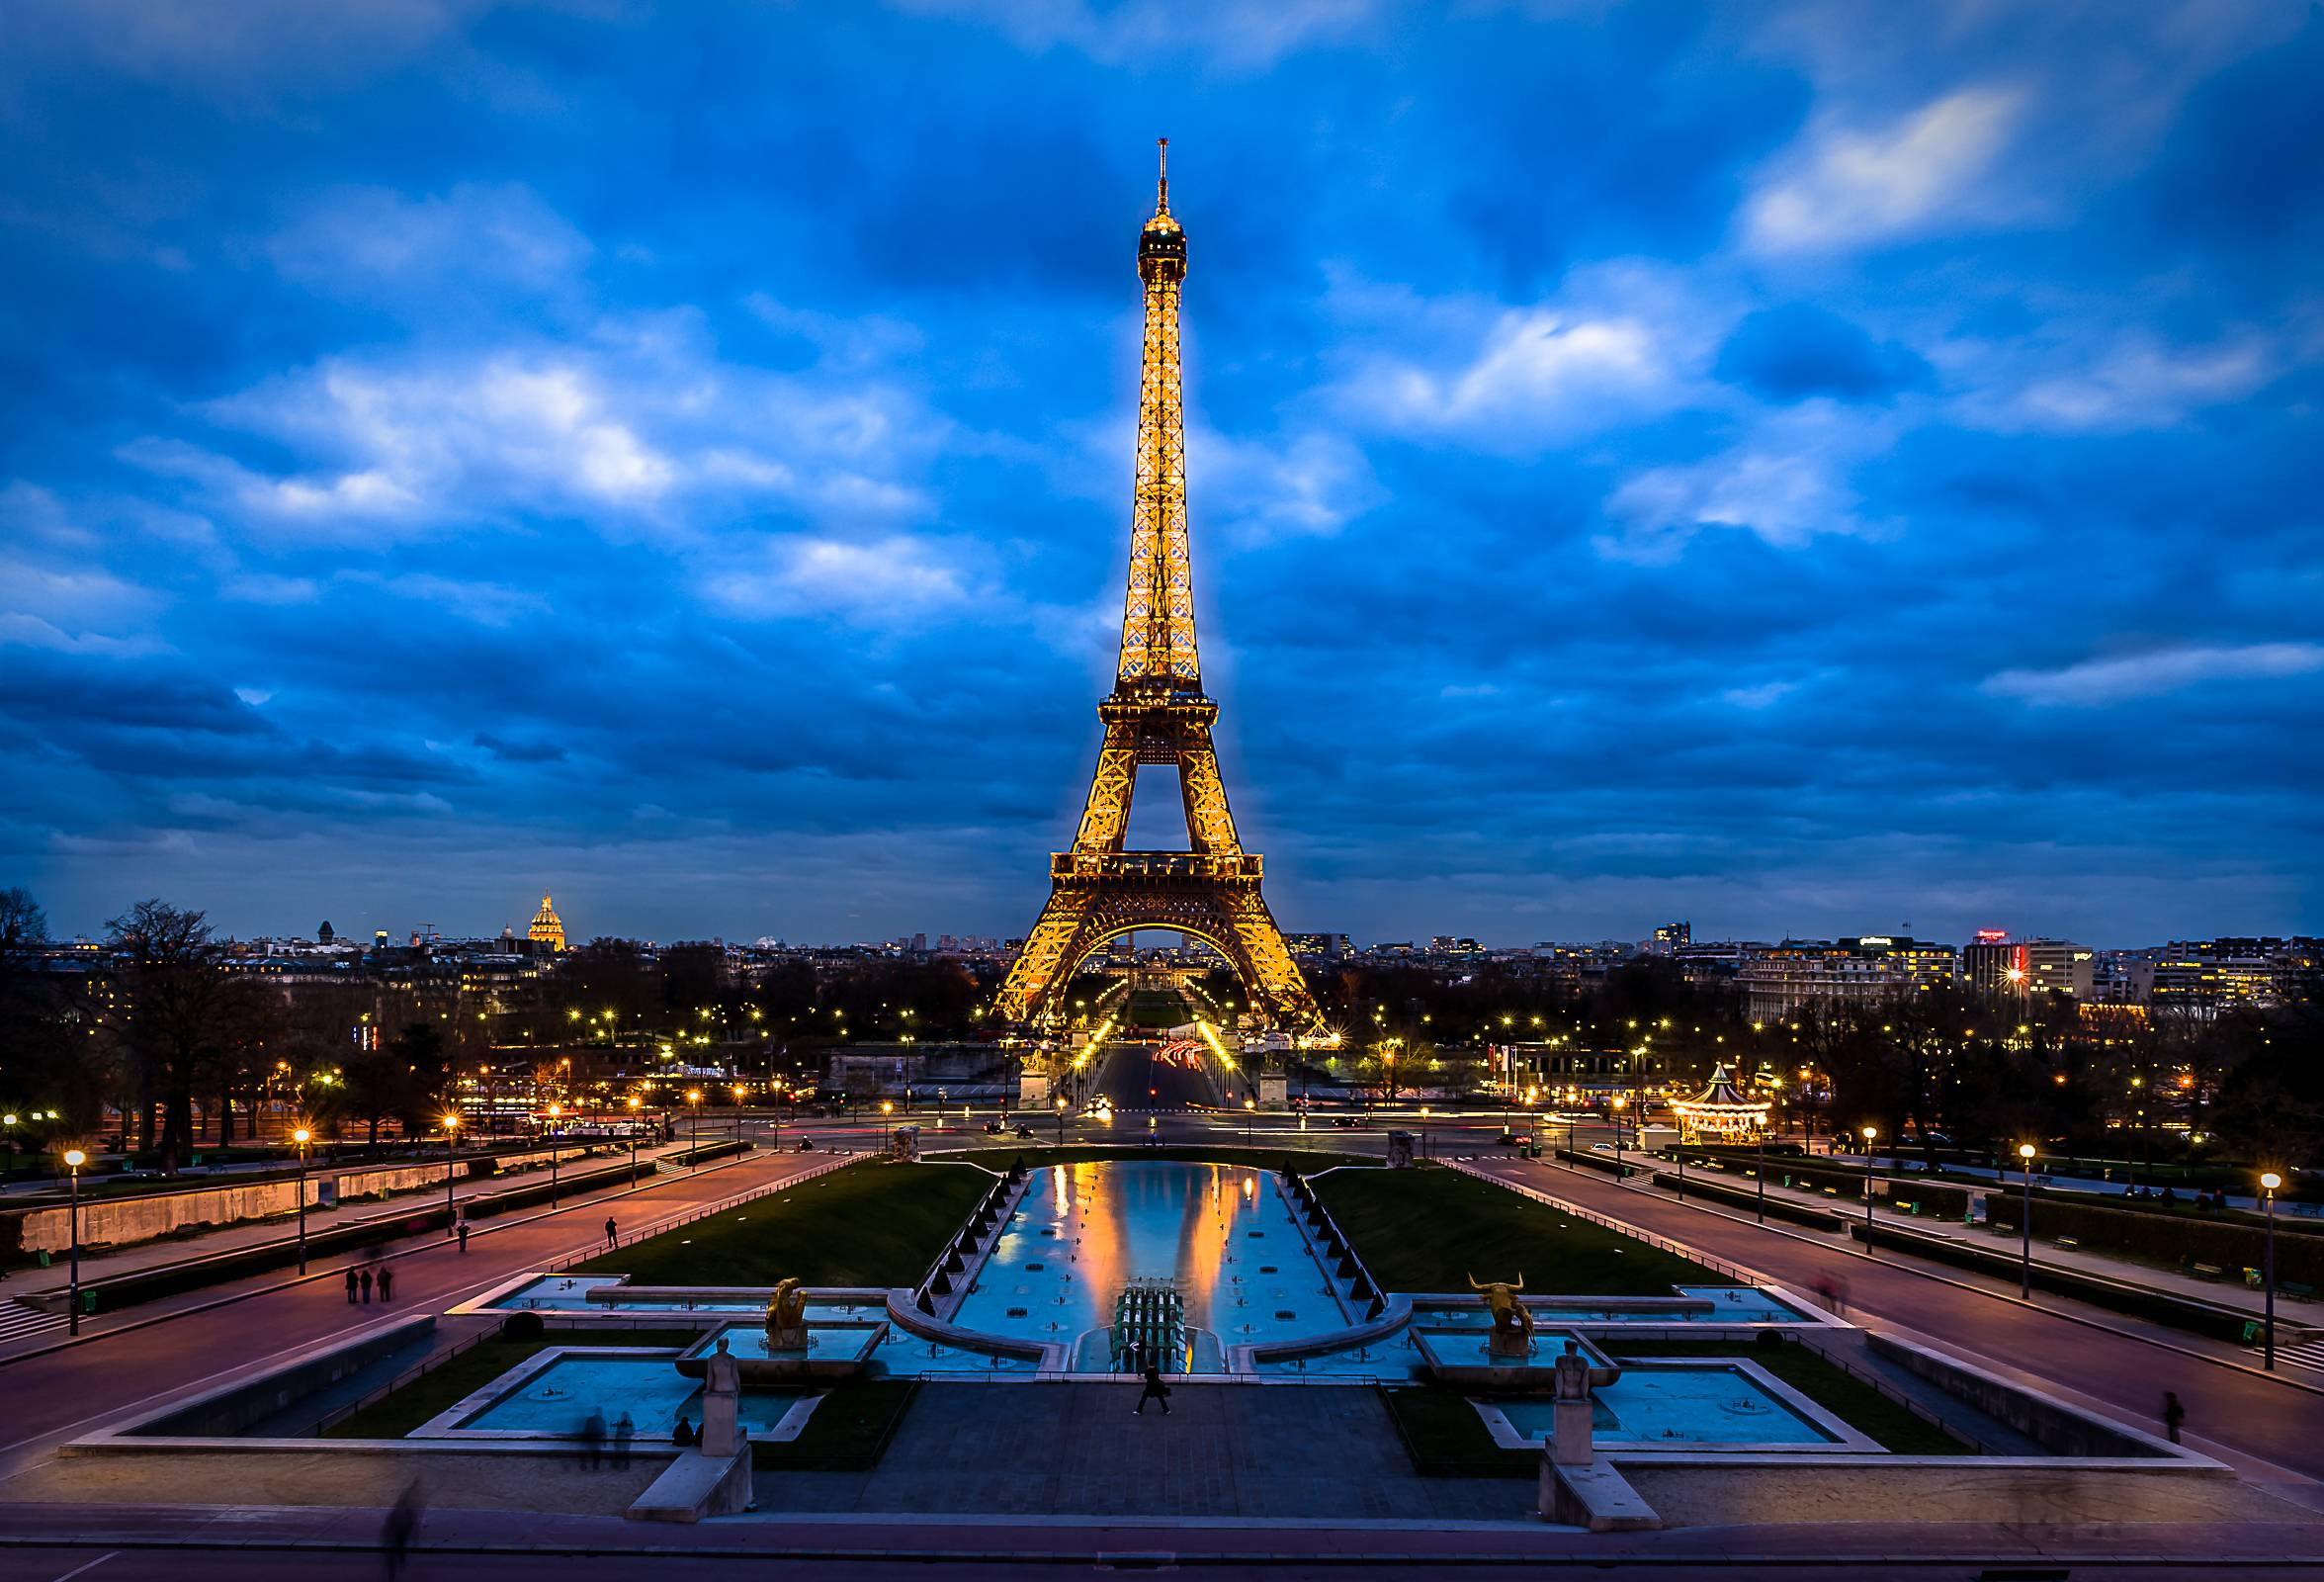 eiffel tower and paris Book eiffel tower tours 1000s of 5 star reviews book online for a memorable experience.